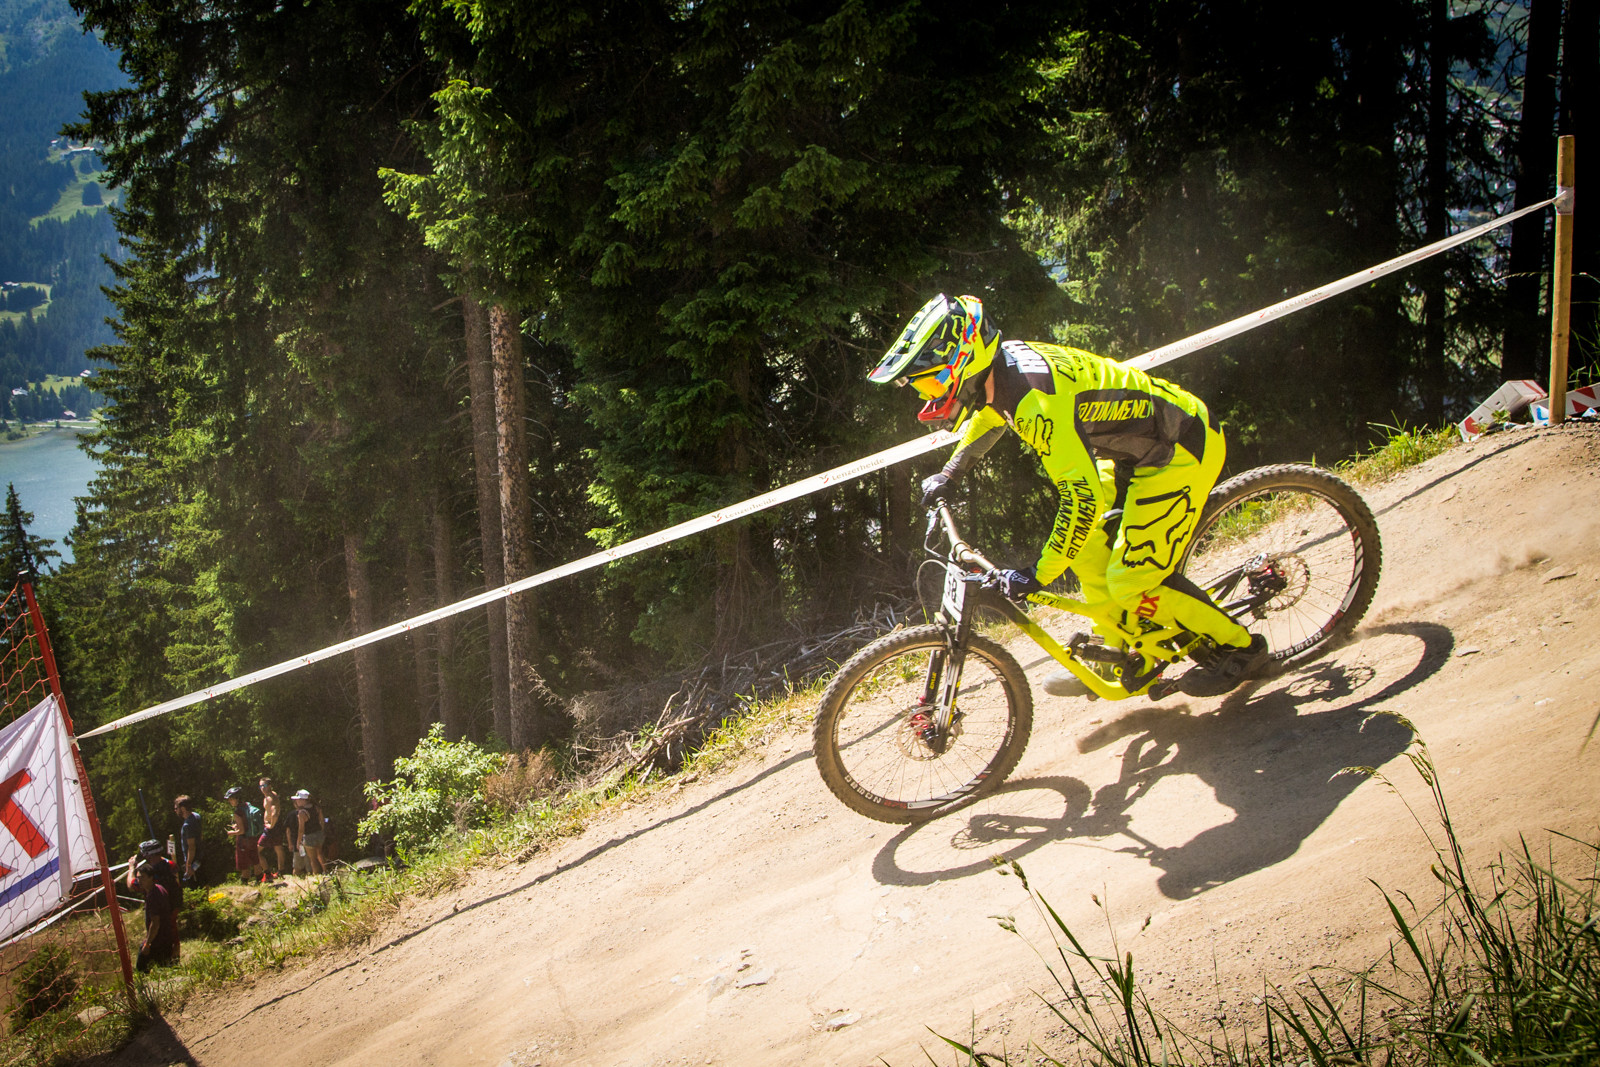 Thibaut Ruffin, G-Out Project, Lenzerheide World Cup - G-Out Project - Lenzerheide World Cup - Mountain Biking Pictures - Vital MTB